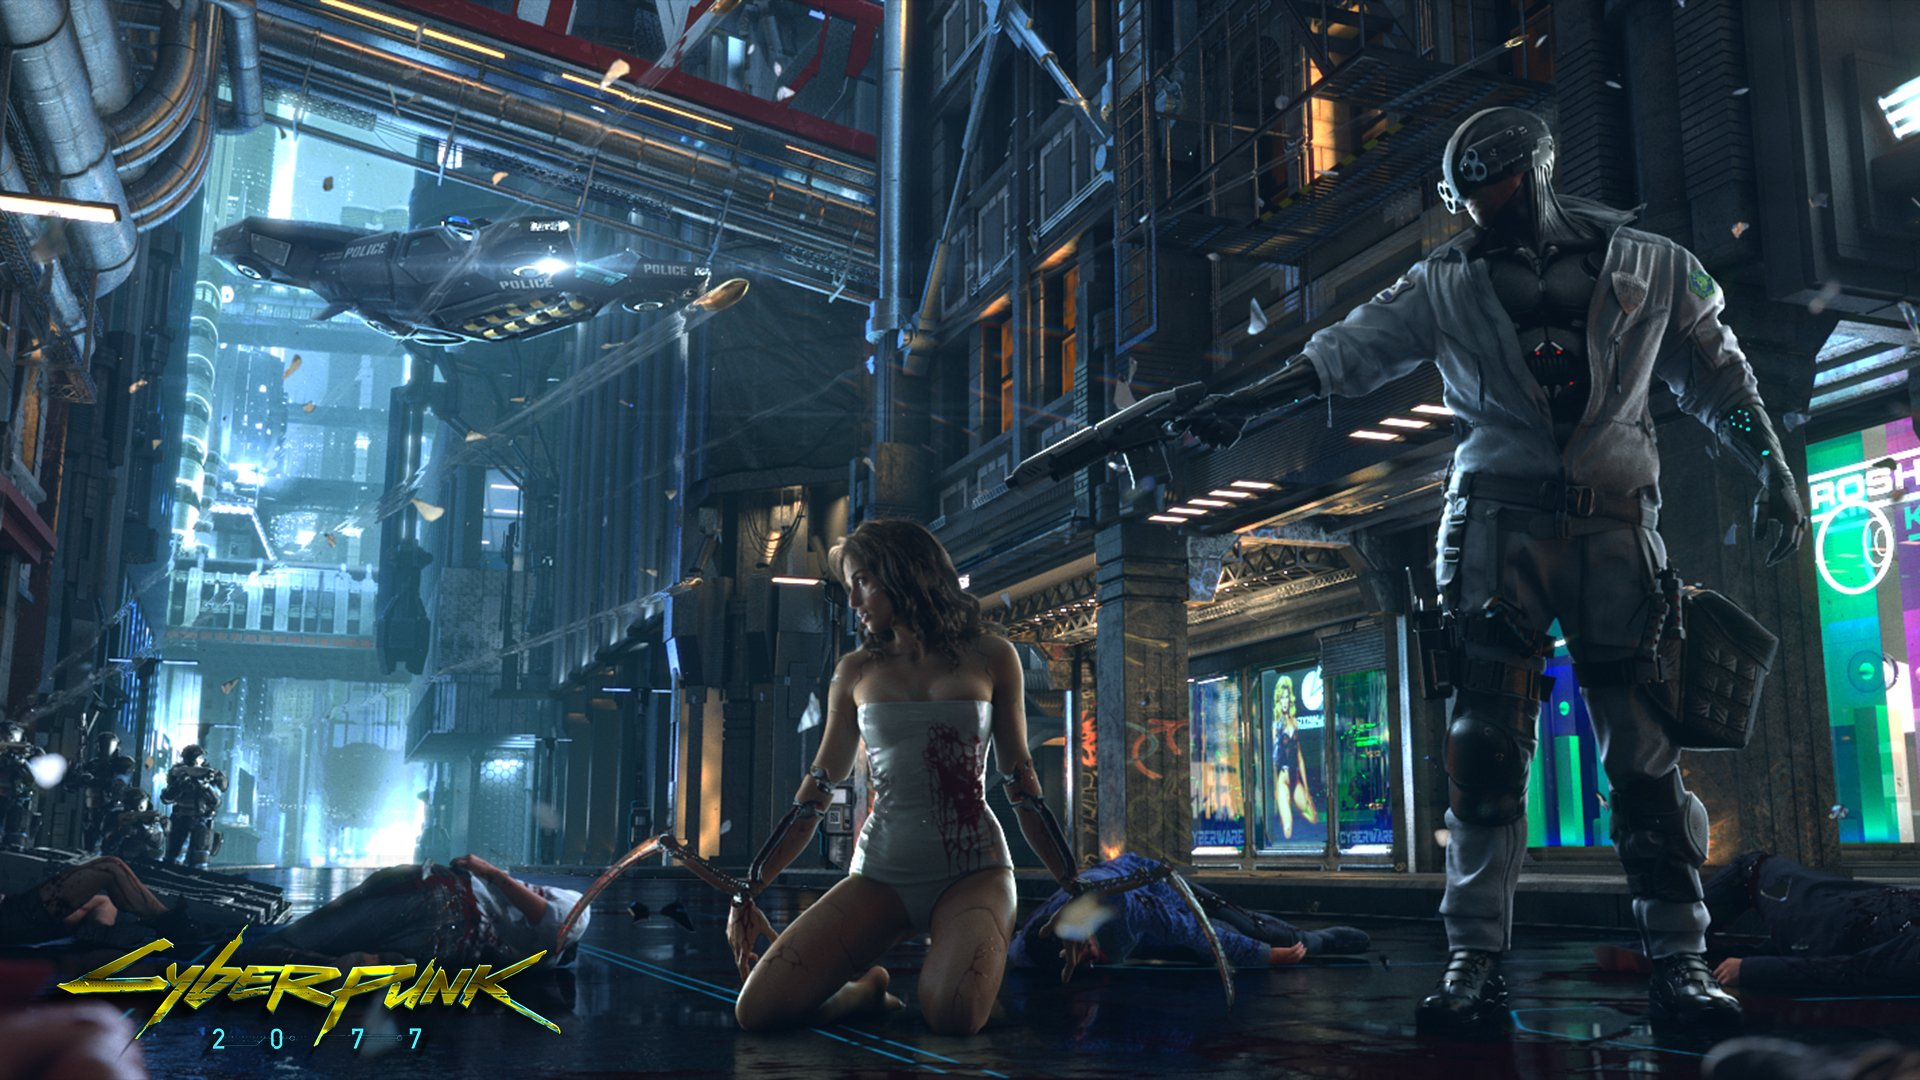 Exclusive Cyberpunk 2077 E3 Figurine Selling For $700 On eBay